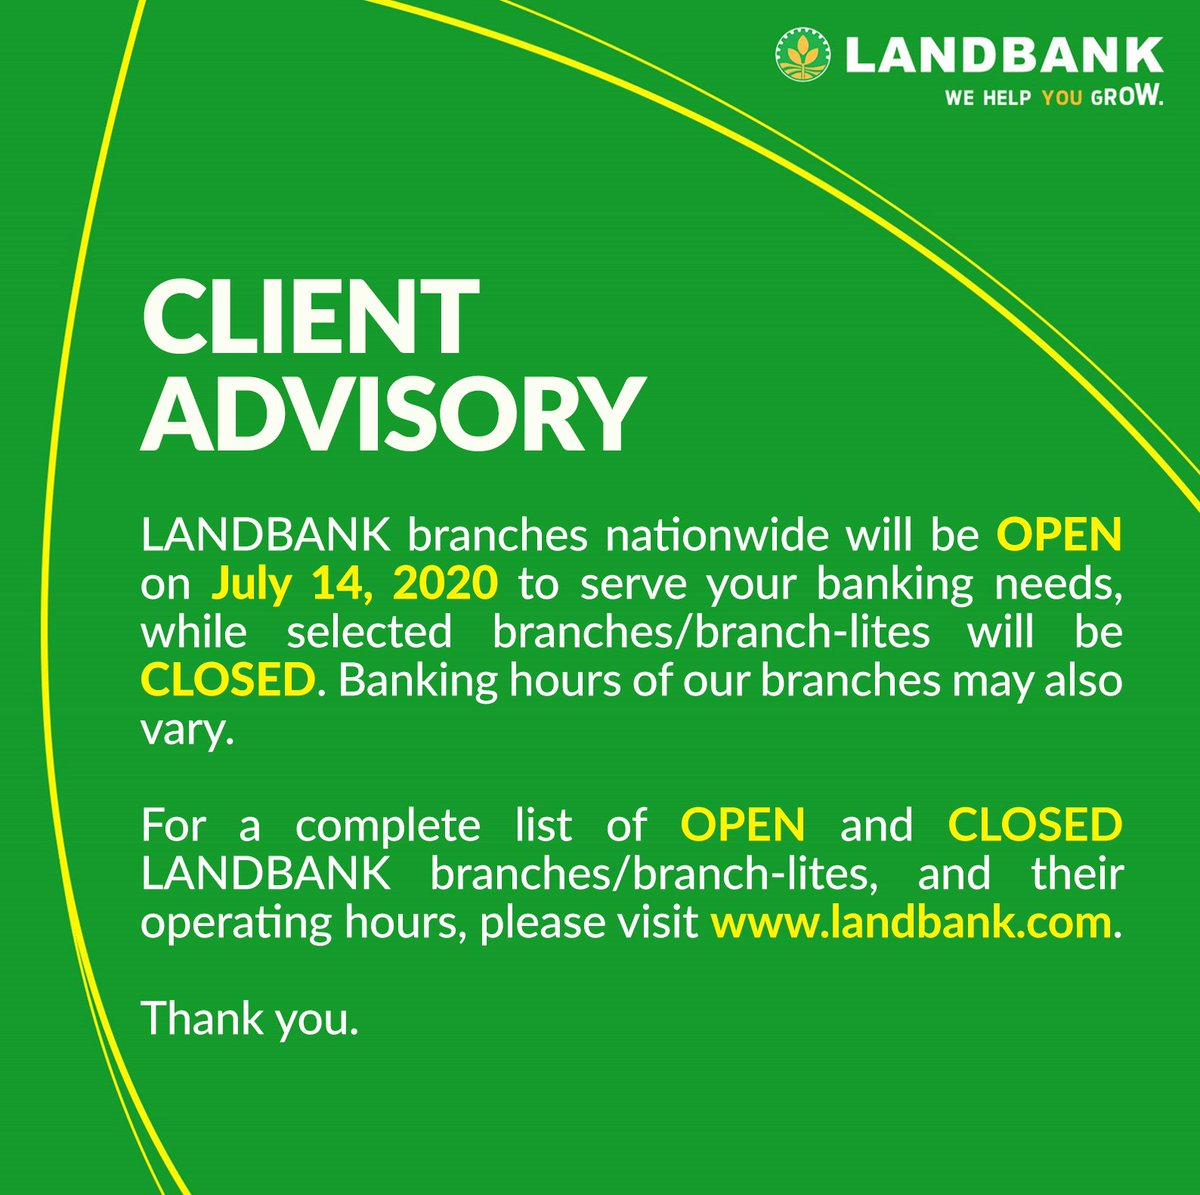 #LANDBANKClientAdvisory  To see the full list of OPEN branches, visit https://t.co/FCgXr9ZZO8  To see the full list of CLOSED branches, visit https://t.co/9YCRtJhidJ https://t.co/JRCf4QThZS